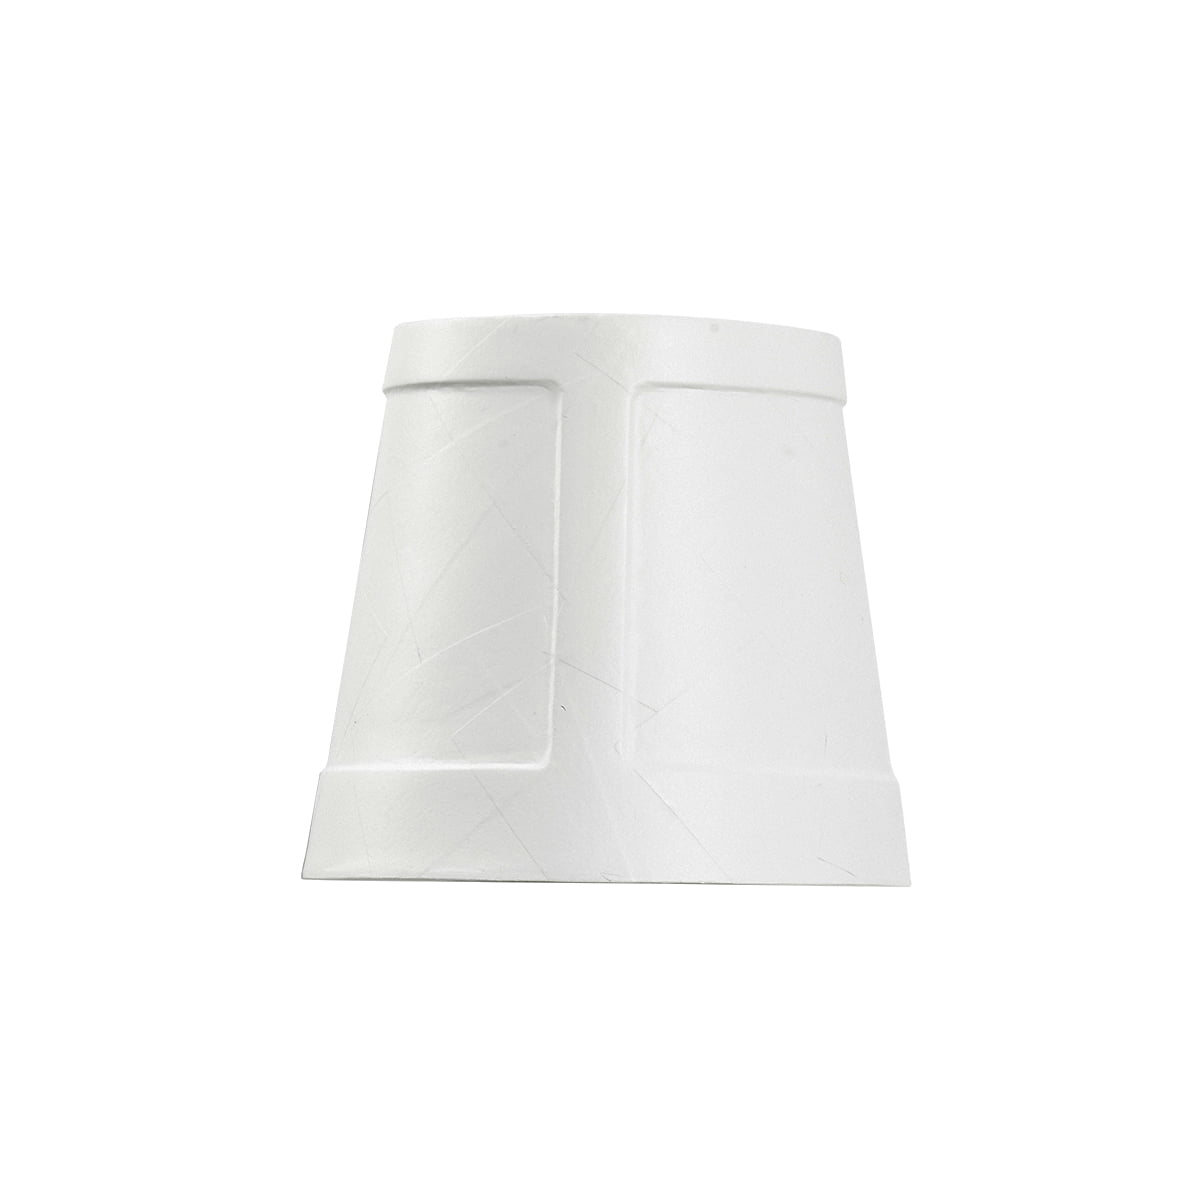 Buy the paper chandelier by moooi online spare lampshades for the paper chandelier l pendant lamp by moooi in white aloadofball Gallery